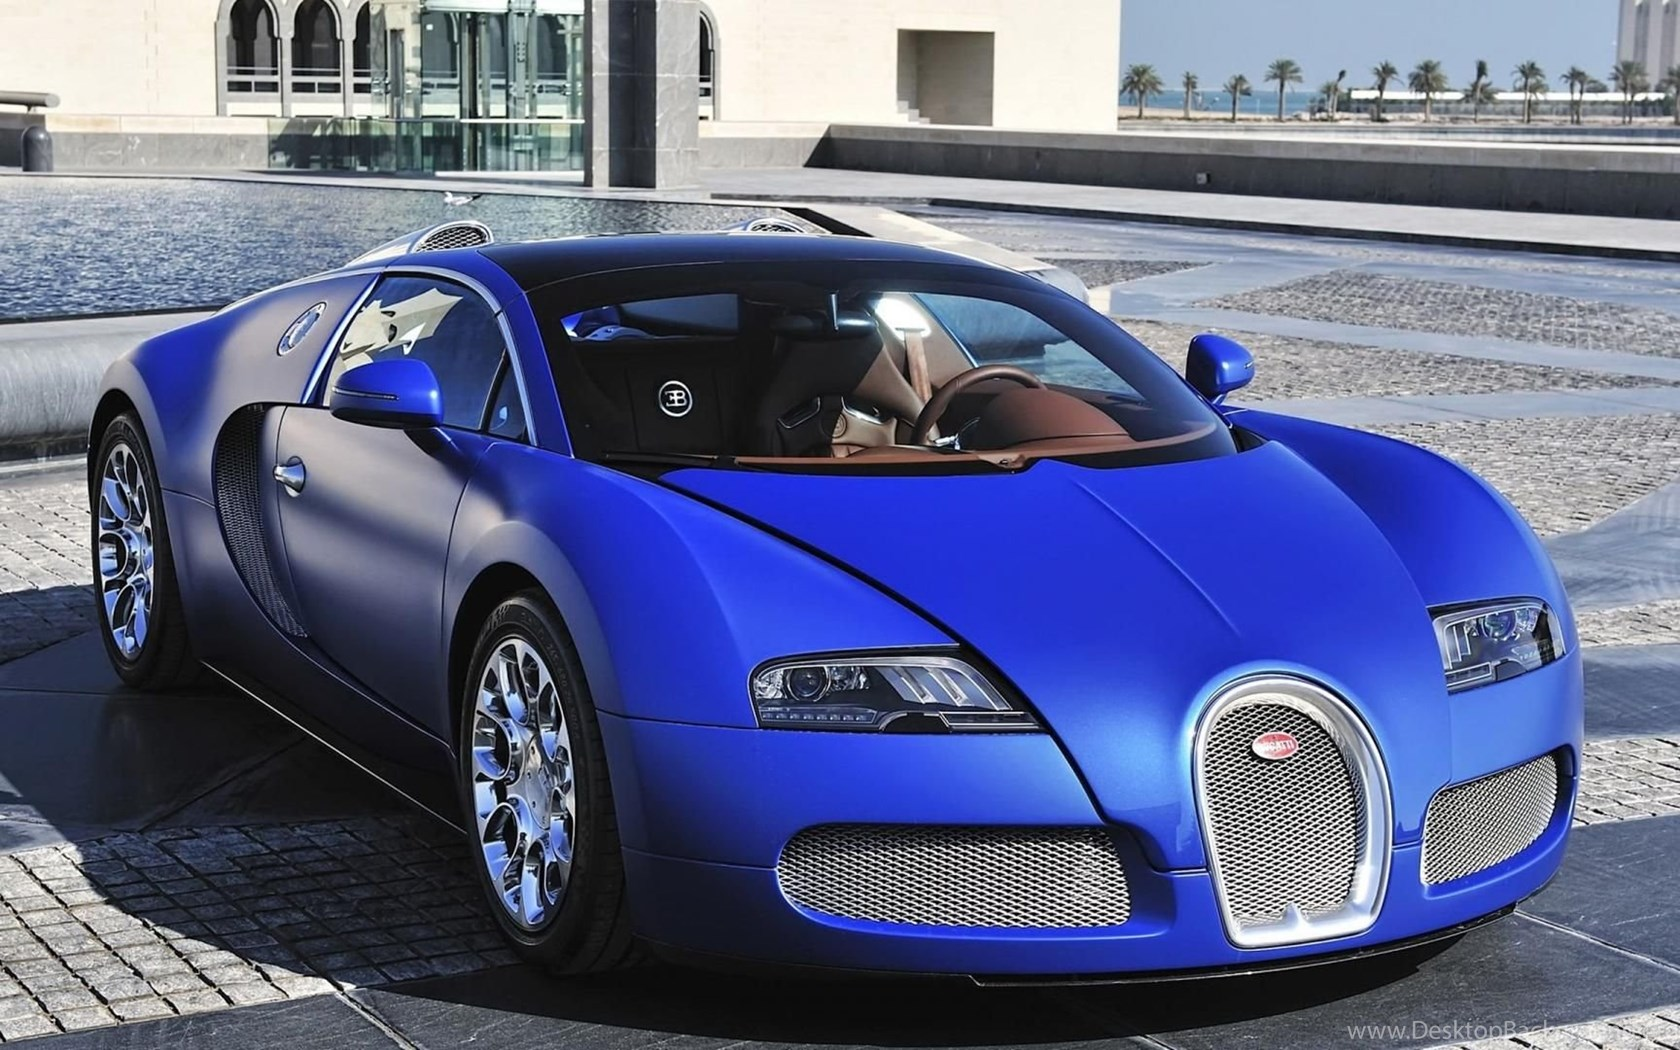 Bugatti Car Images Free Download Sport Cars Wallpapers 2016 Desktop Background